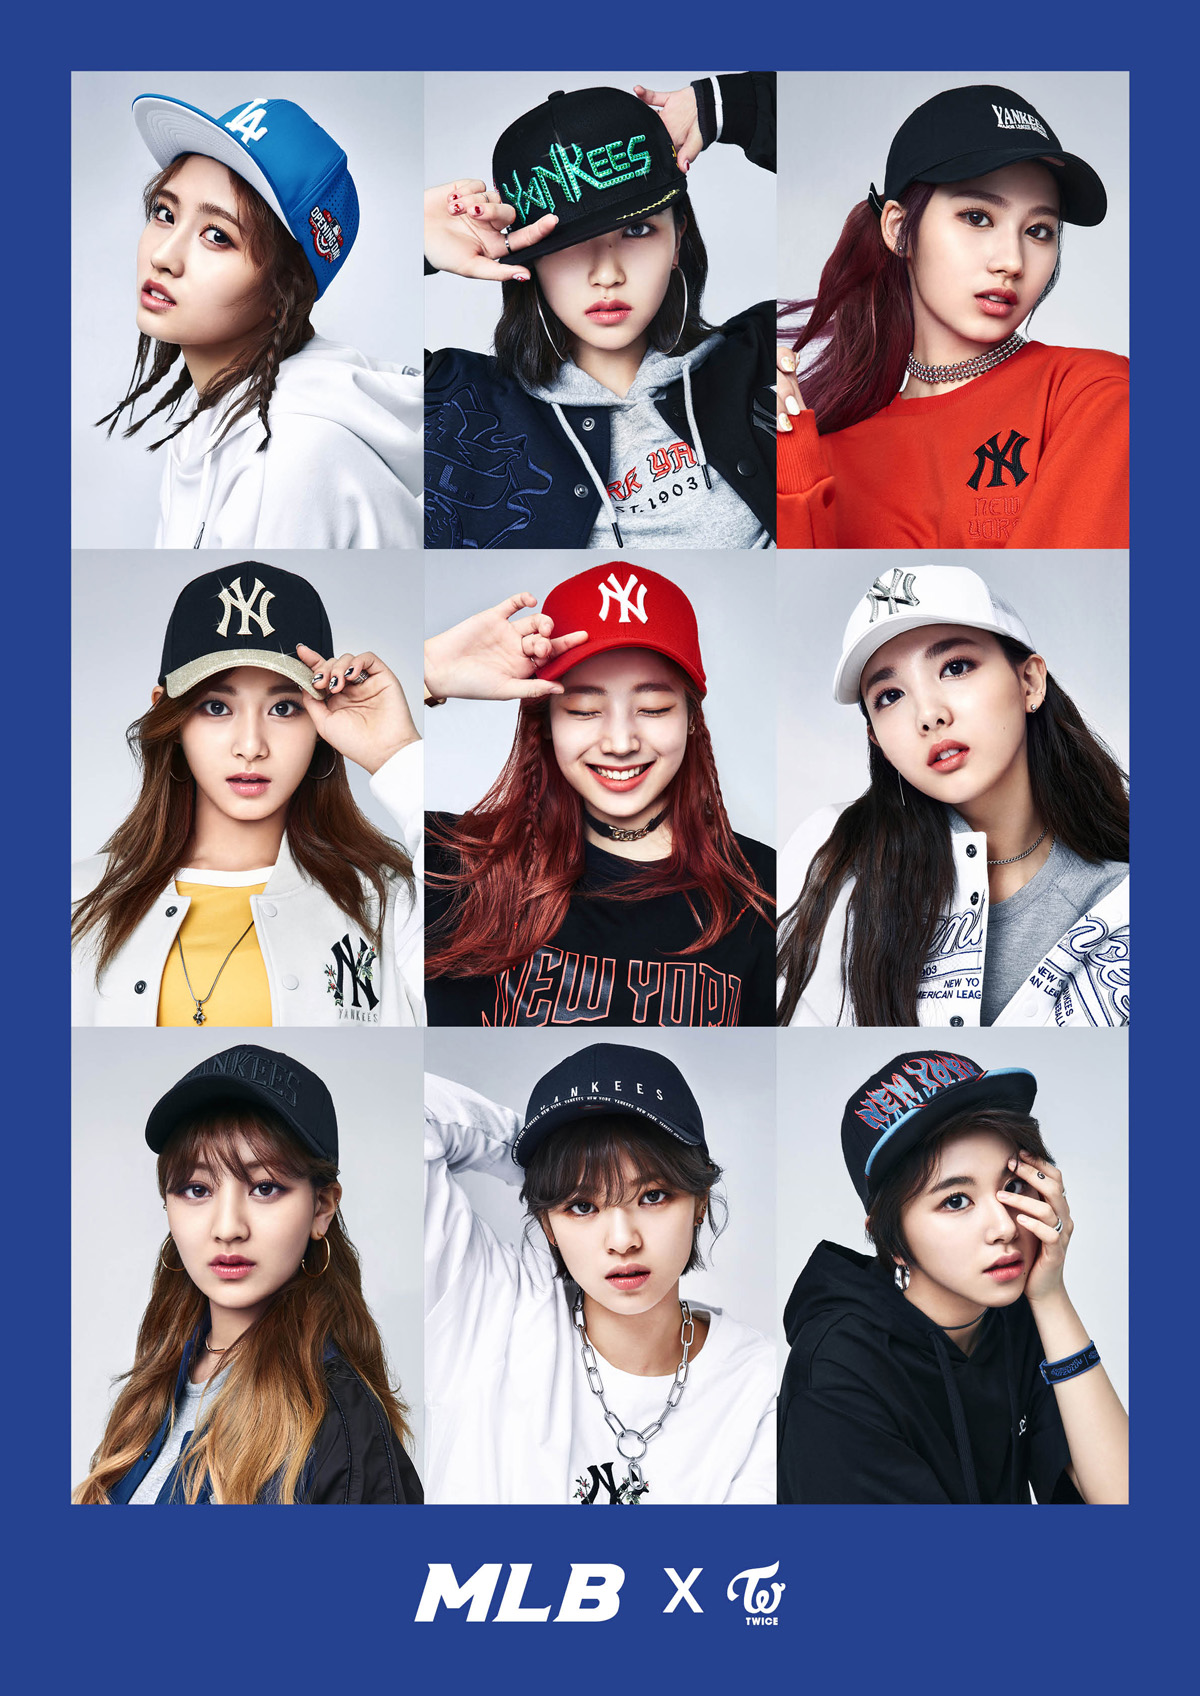 Twice 39 s sporty looks for mlb korea plus scenes from the set kpop korean hair and style Different fashion style groups